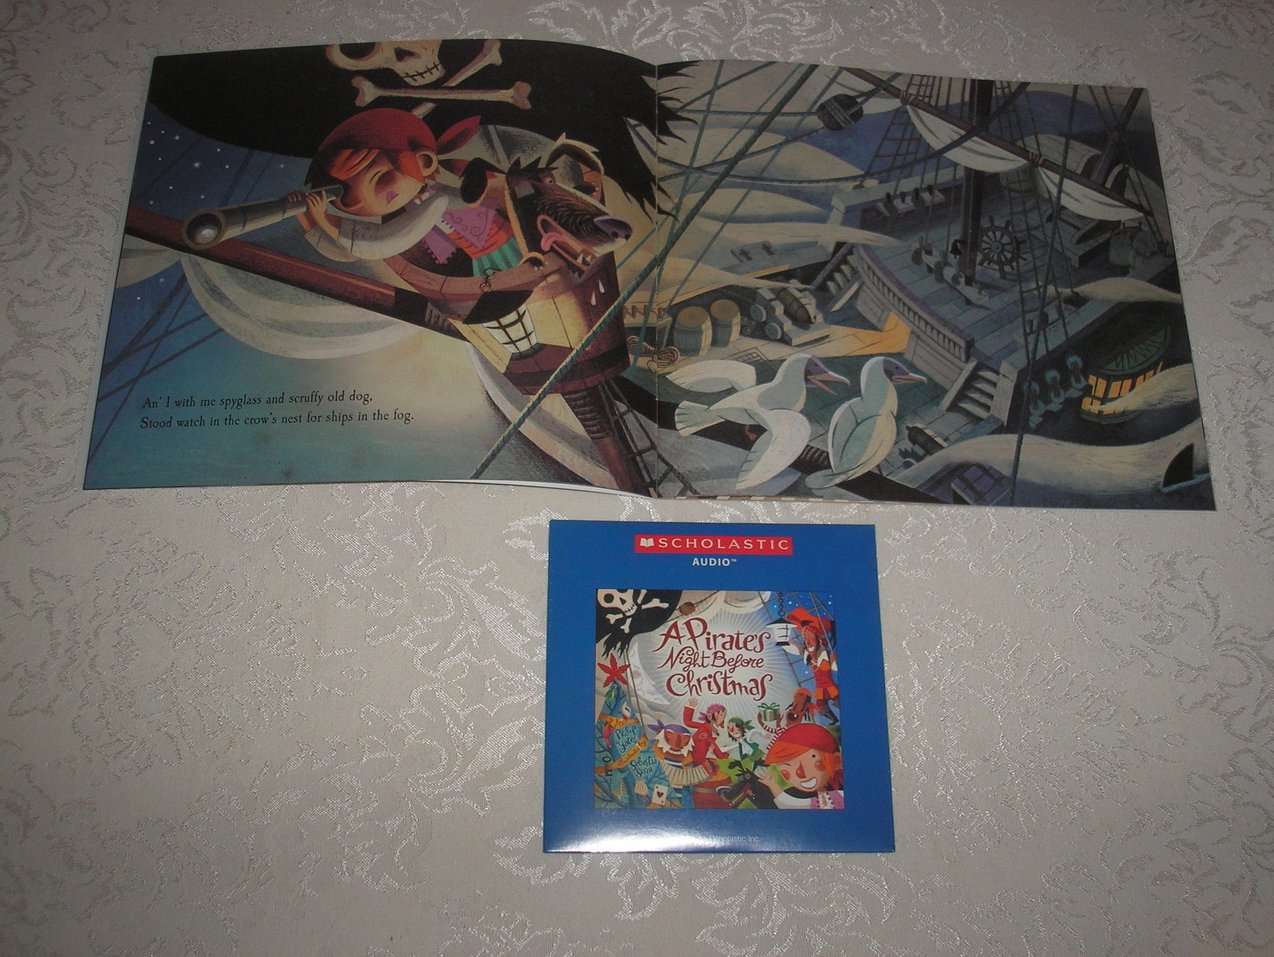 Image 1 of A Pirate's Night Before Christmas brand new sc and sealed Audio CD Philip Yates